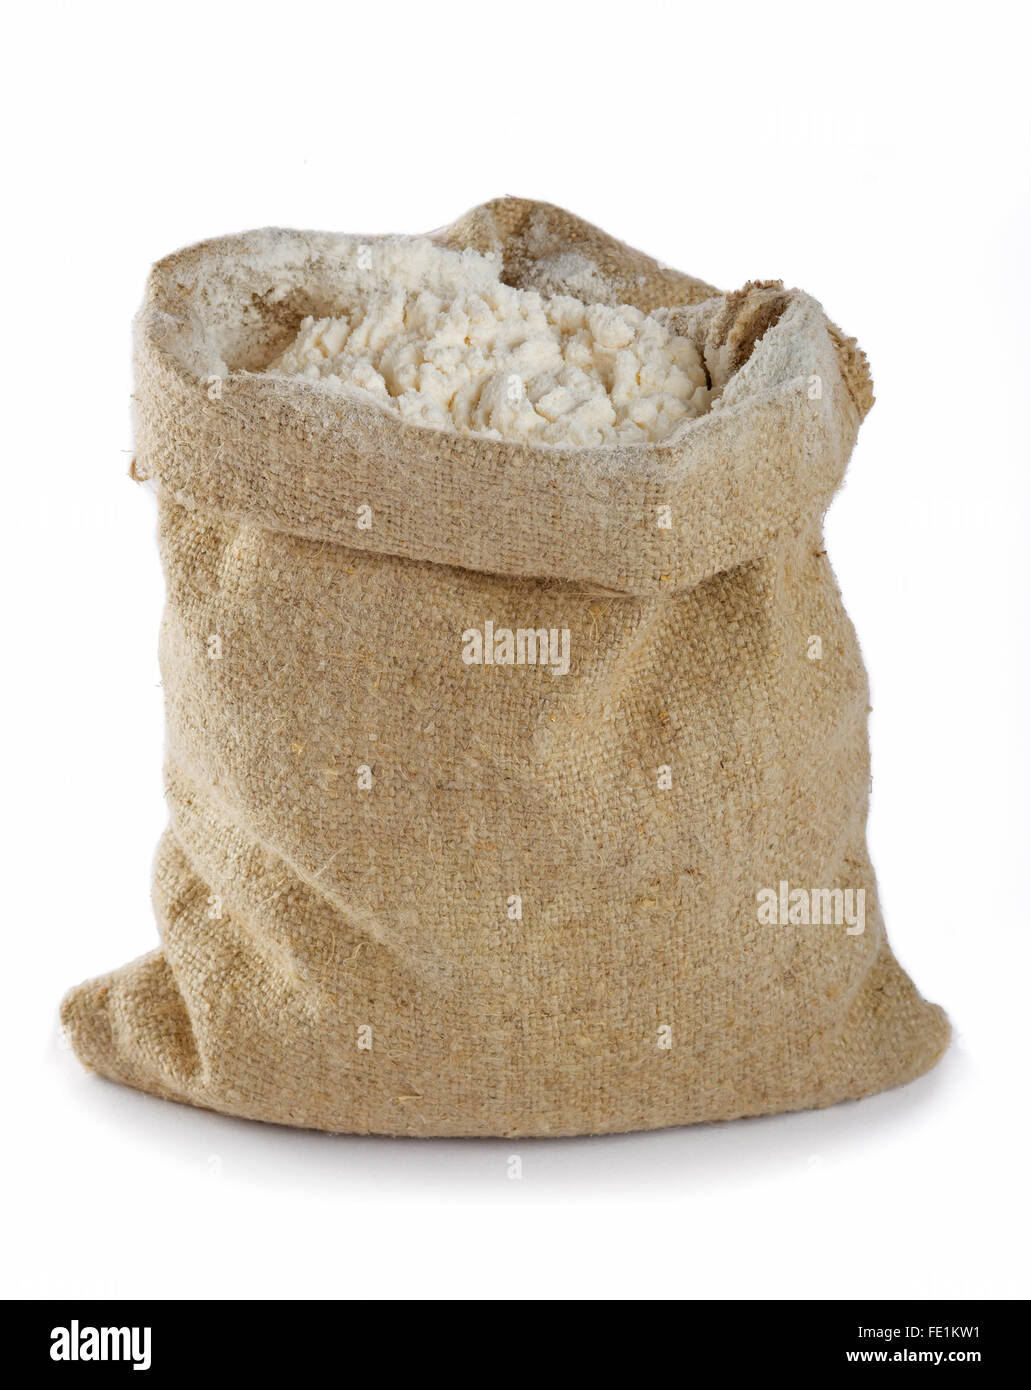 Flour in canvas bag isolated on white background - Stock Image